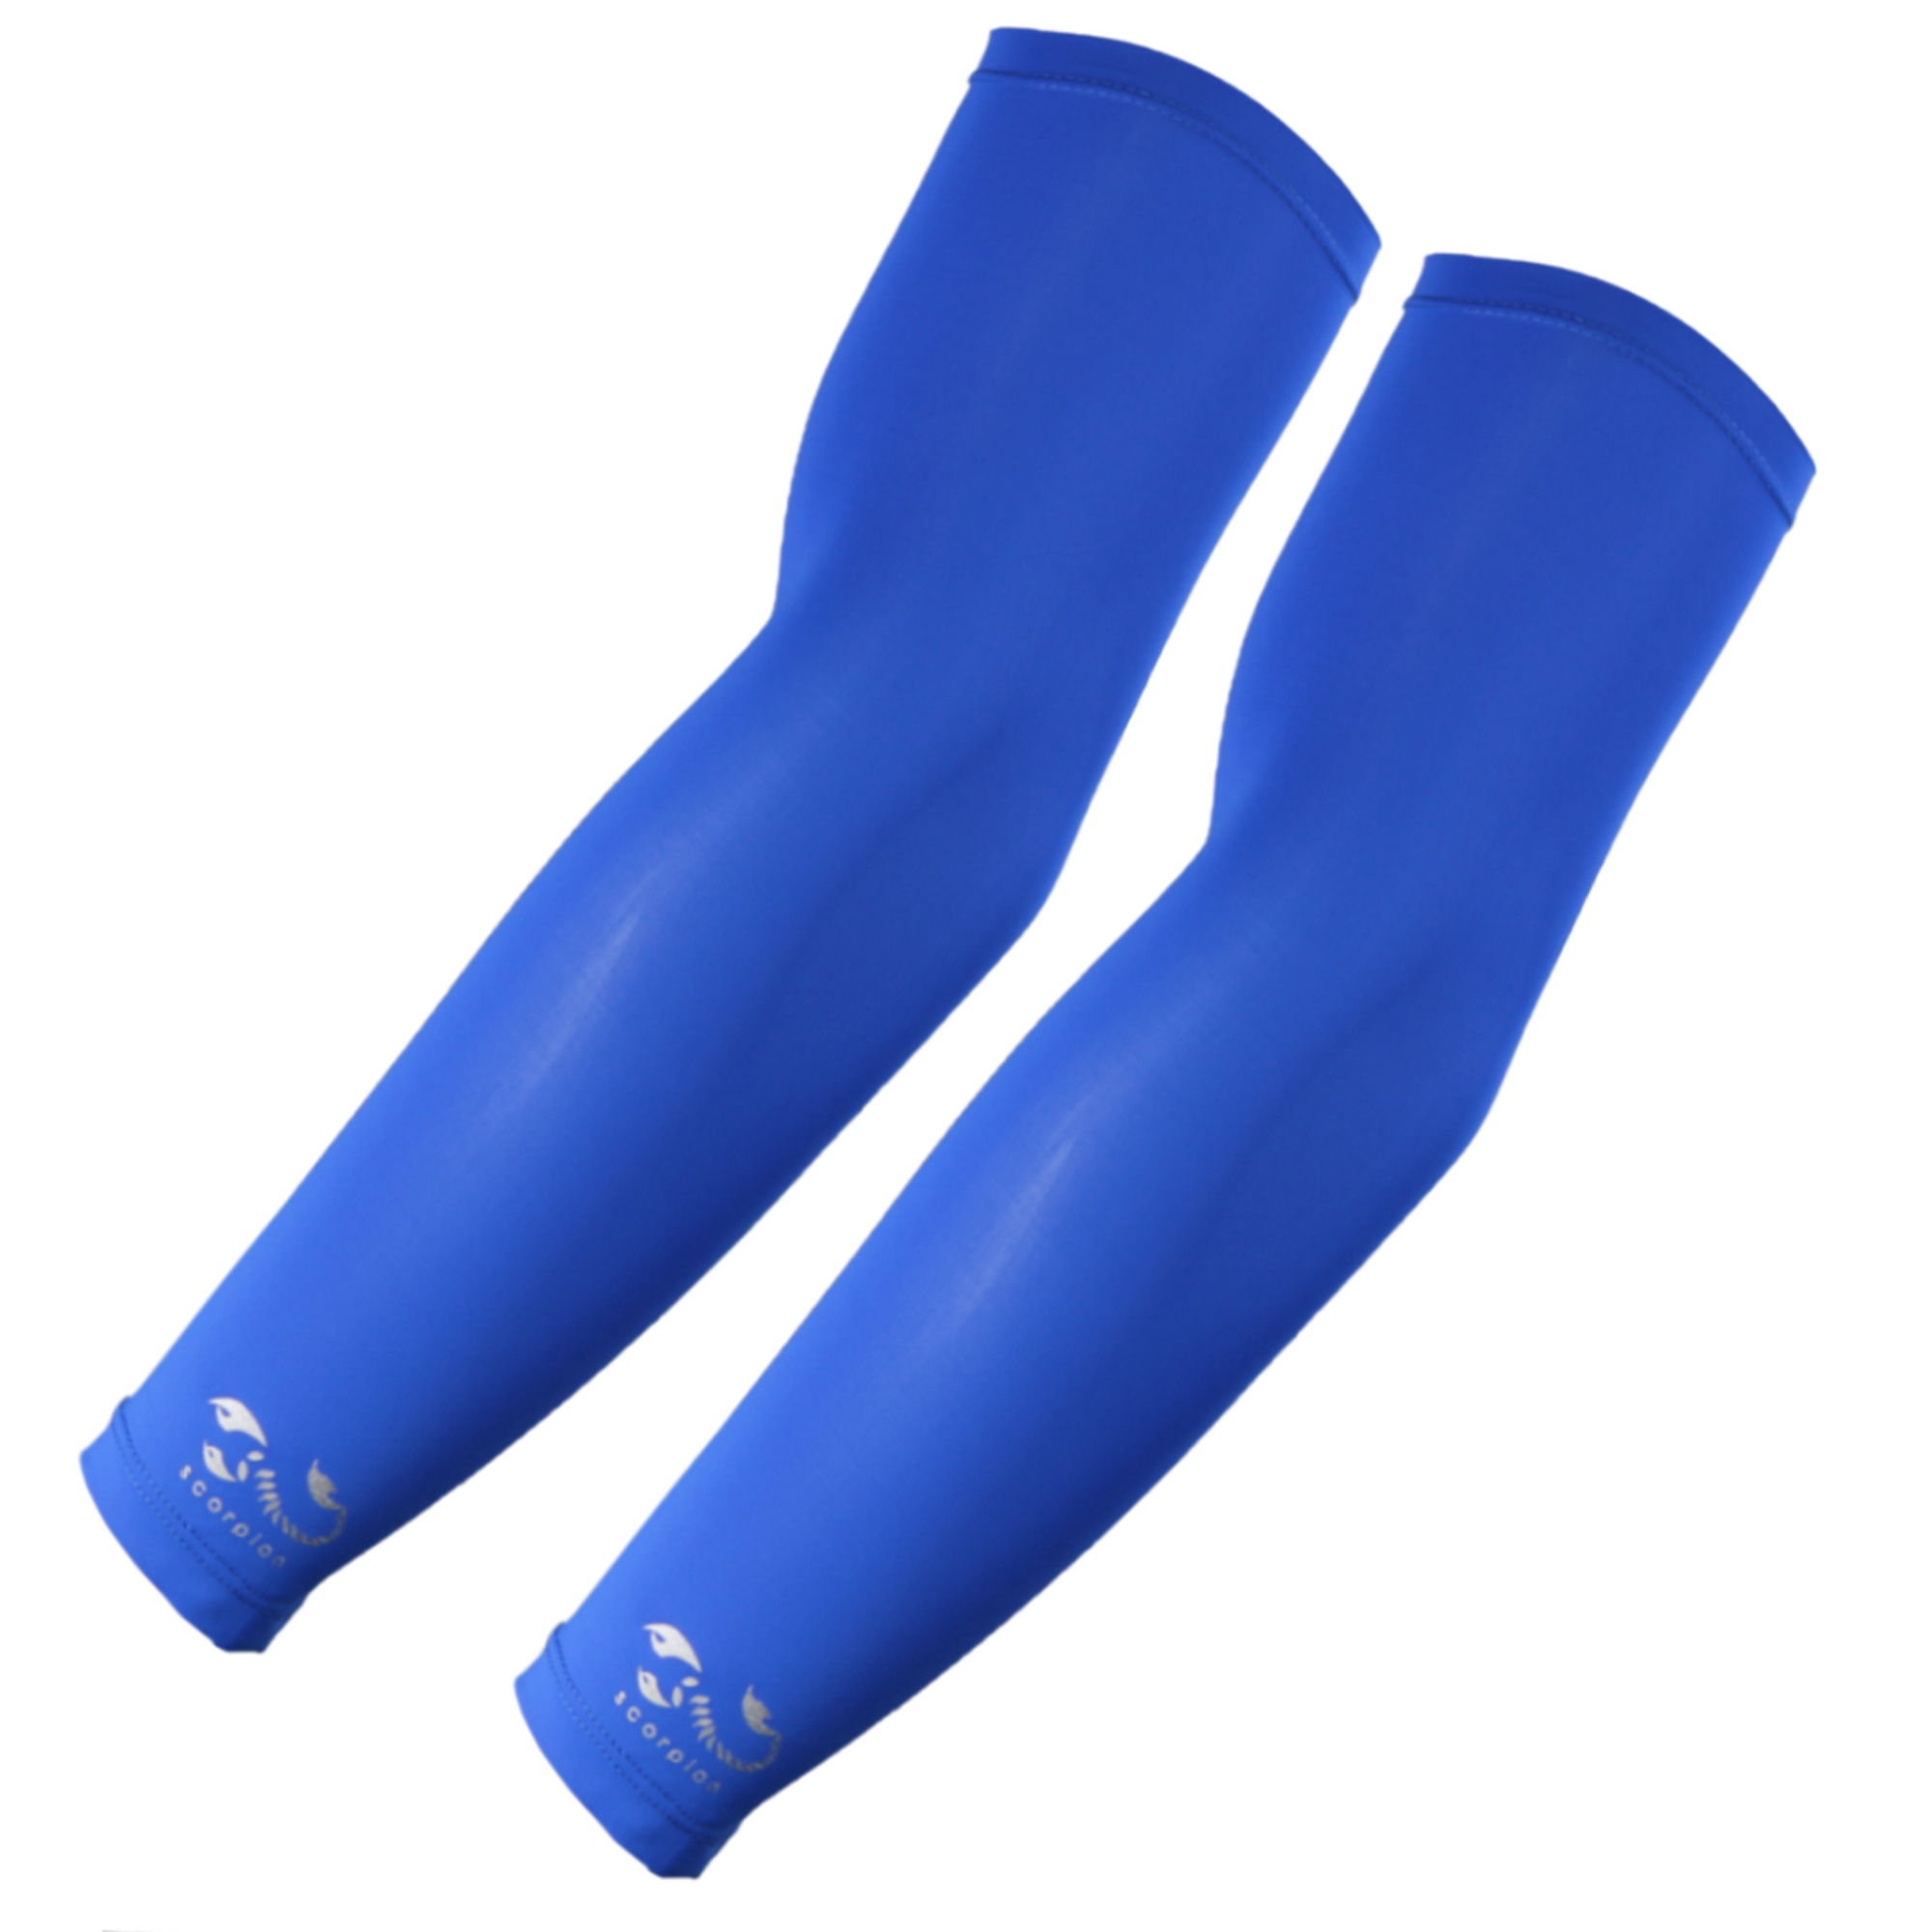 The Elixir Scorpion Hunting UV Protective Arm Sleeves Arm Compression Cover Cooler, Blue